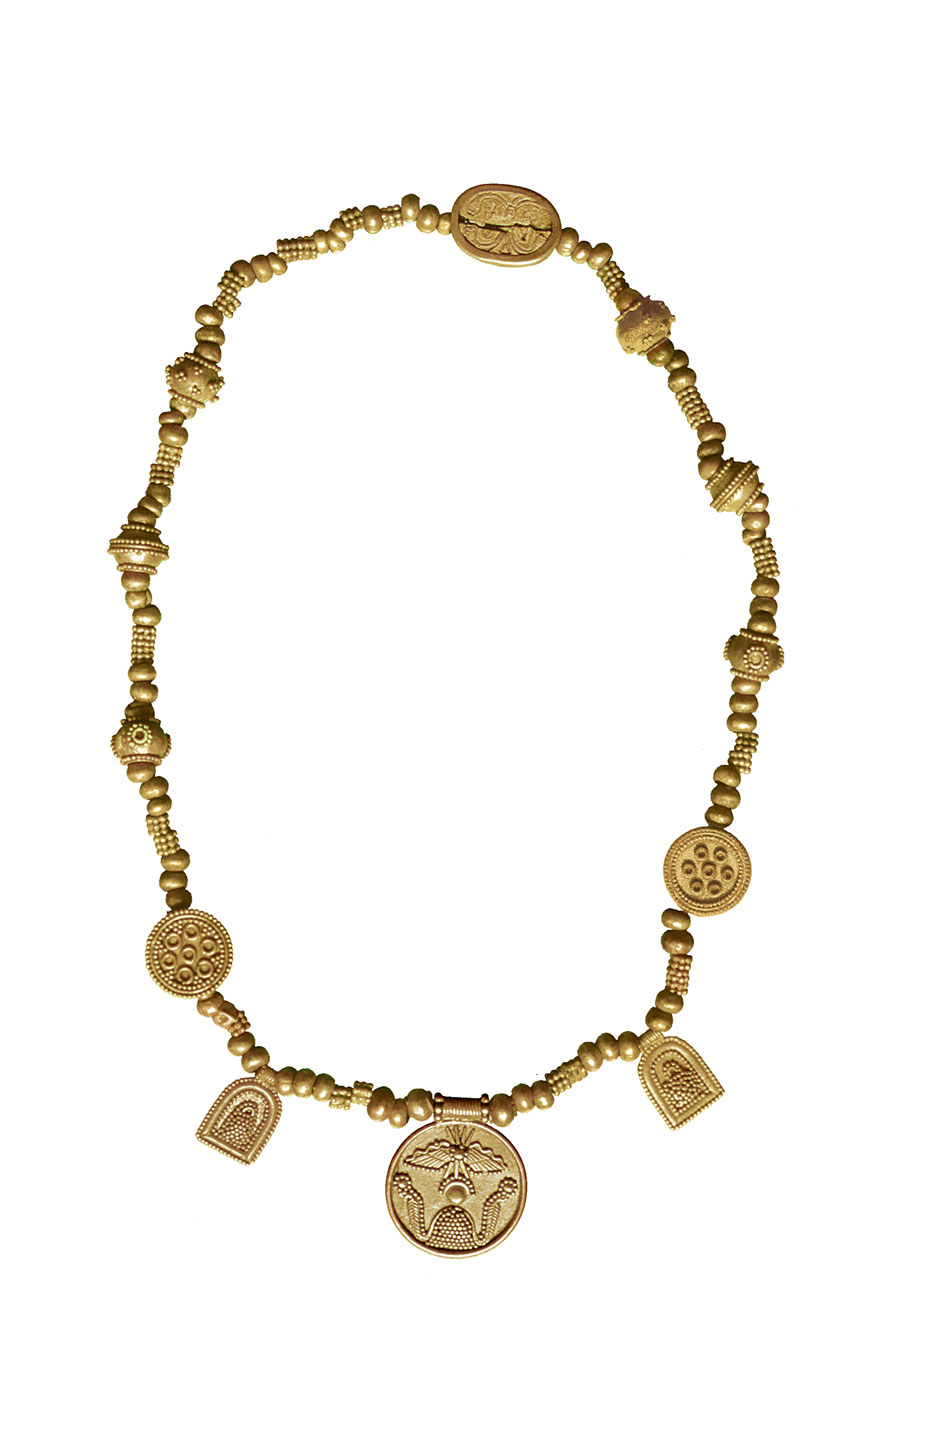 necklace Assyria.jpg